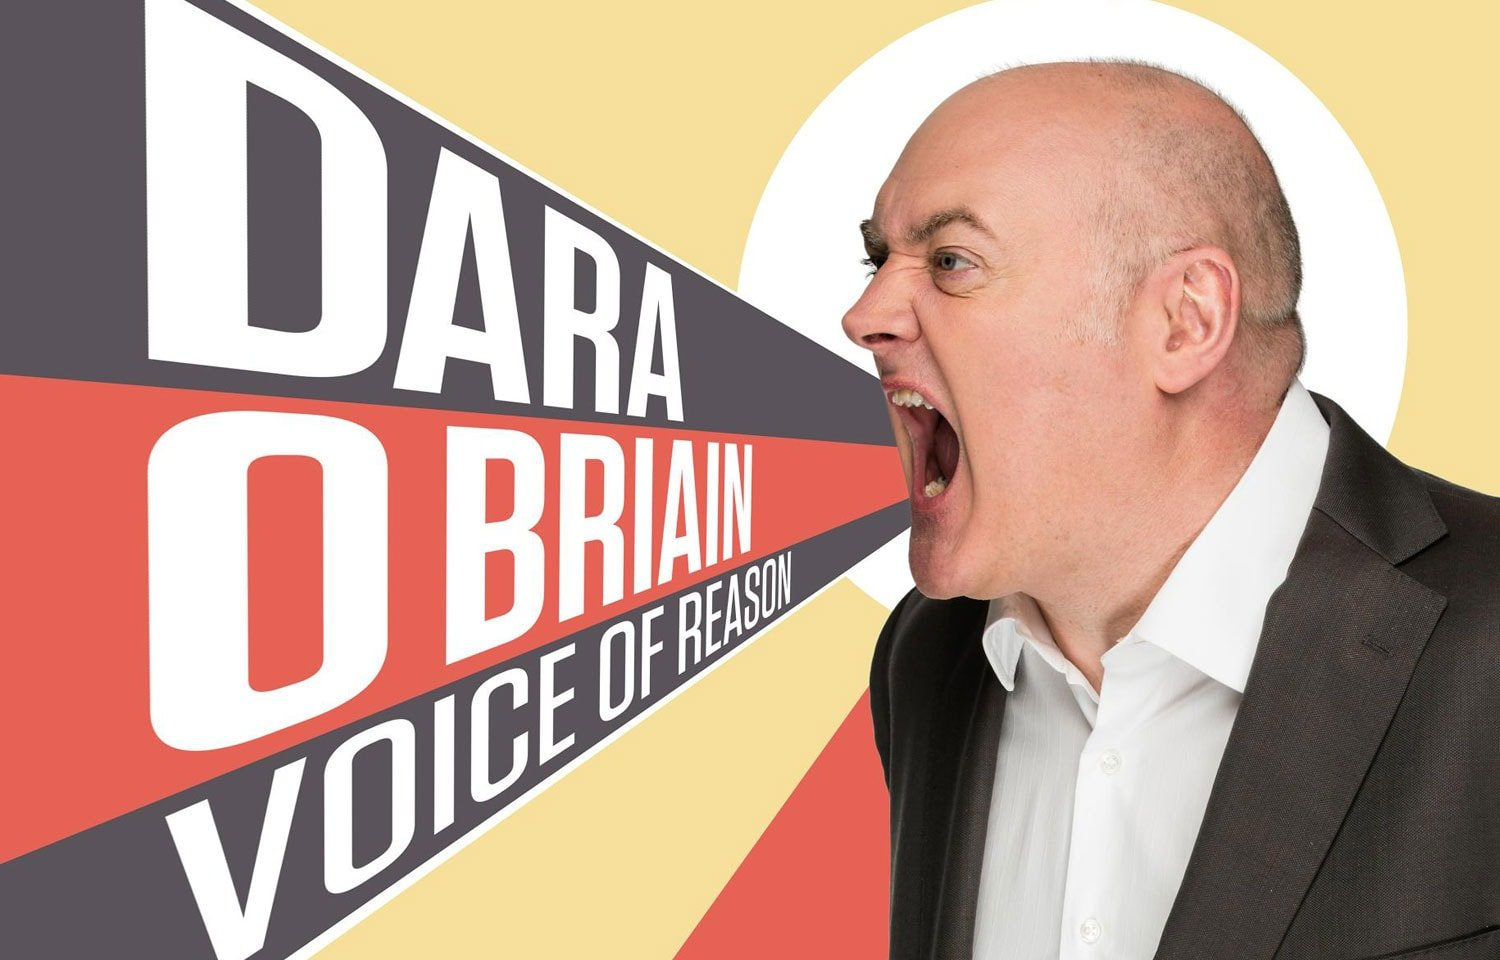 DARA O BRIAIN'S FIVE STAR HIT VOICE OF REASON COMES TO LONDON